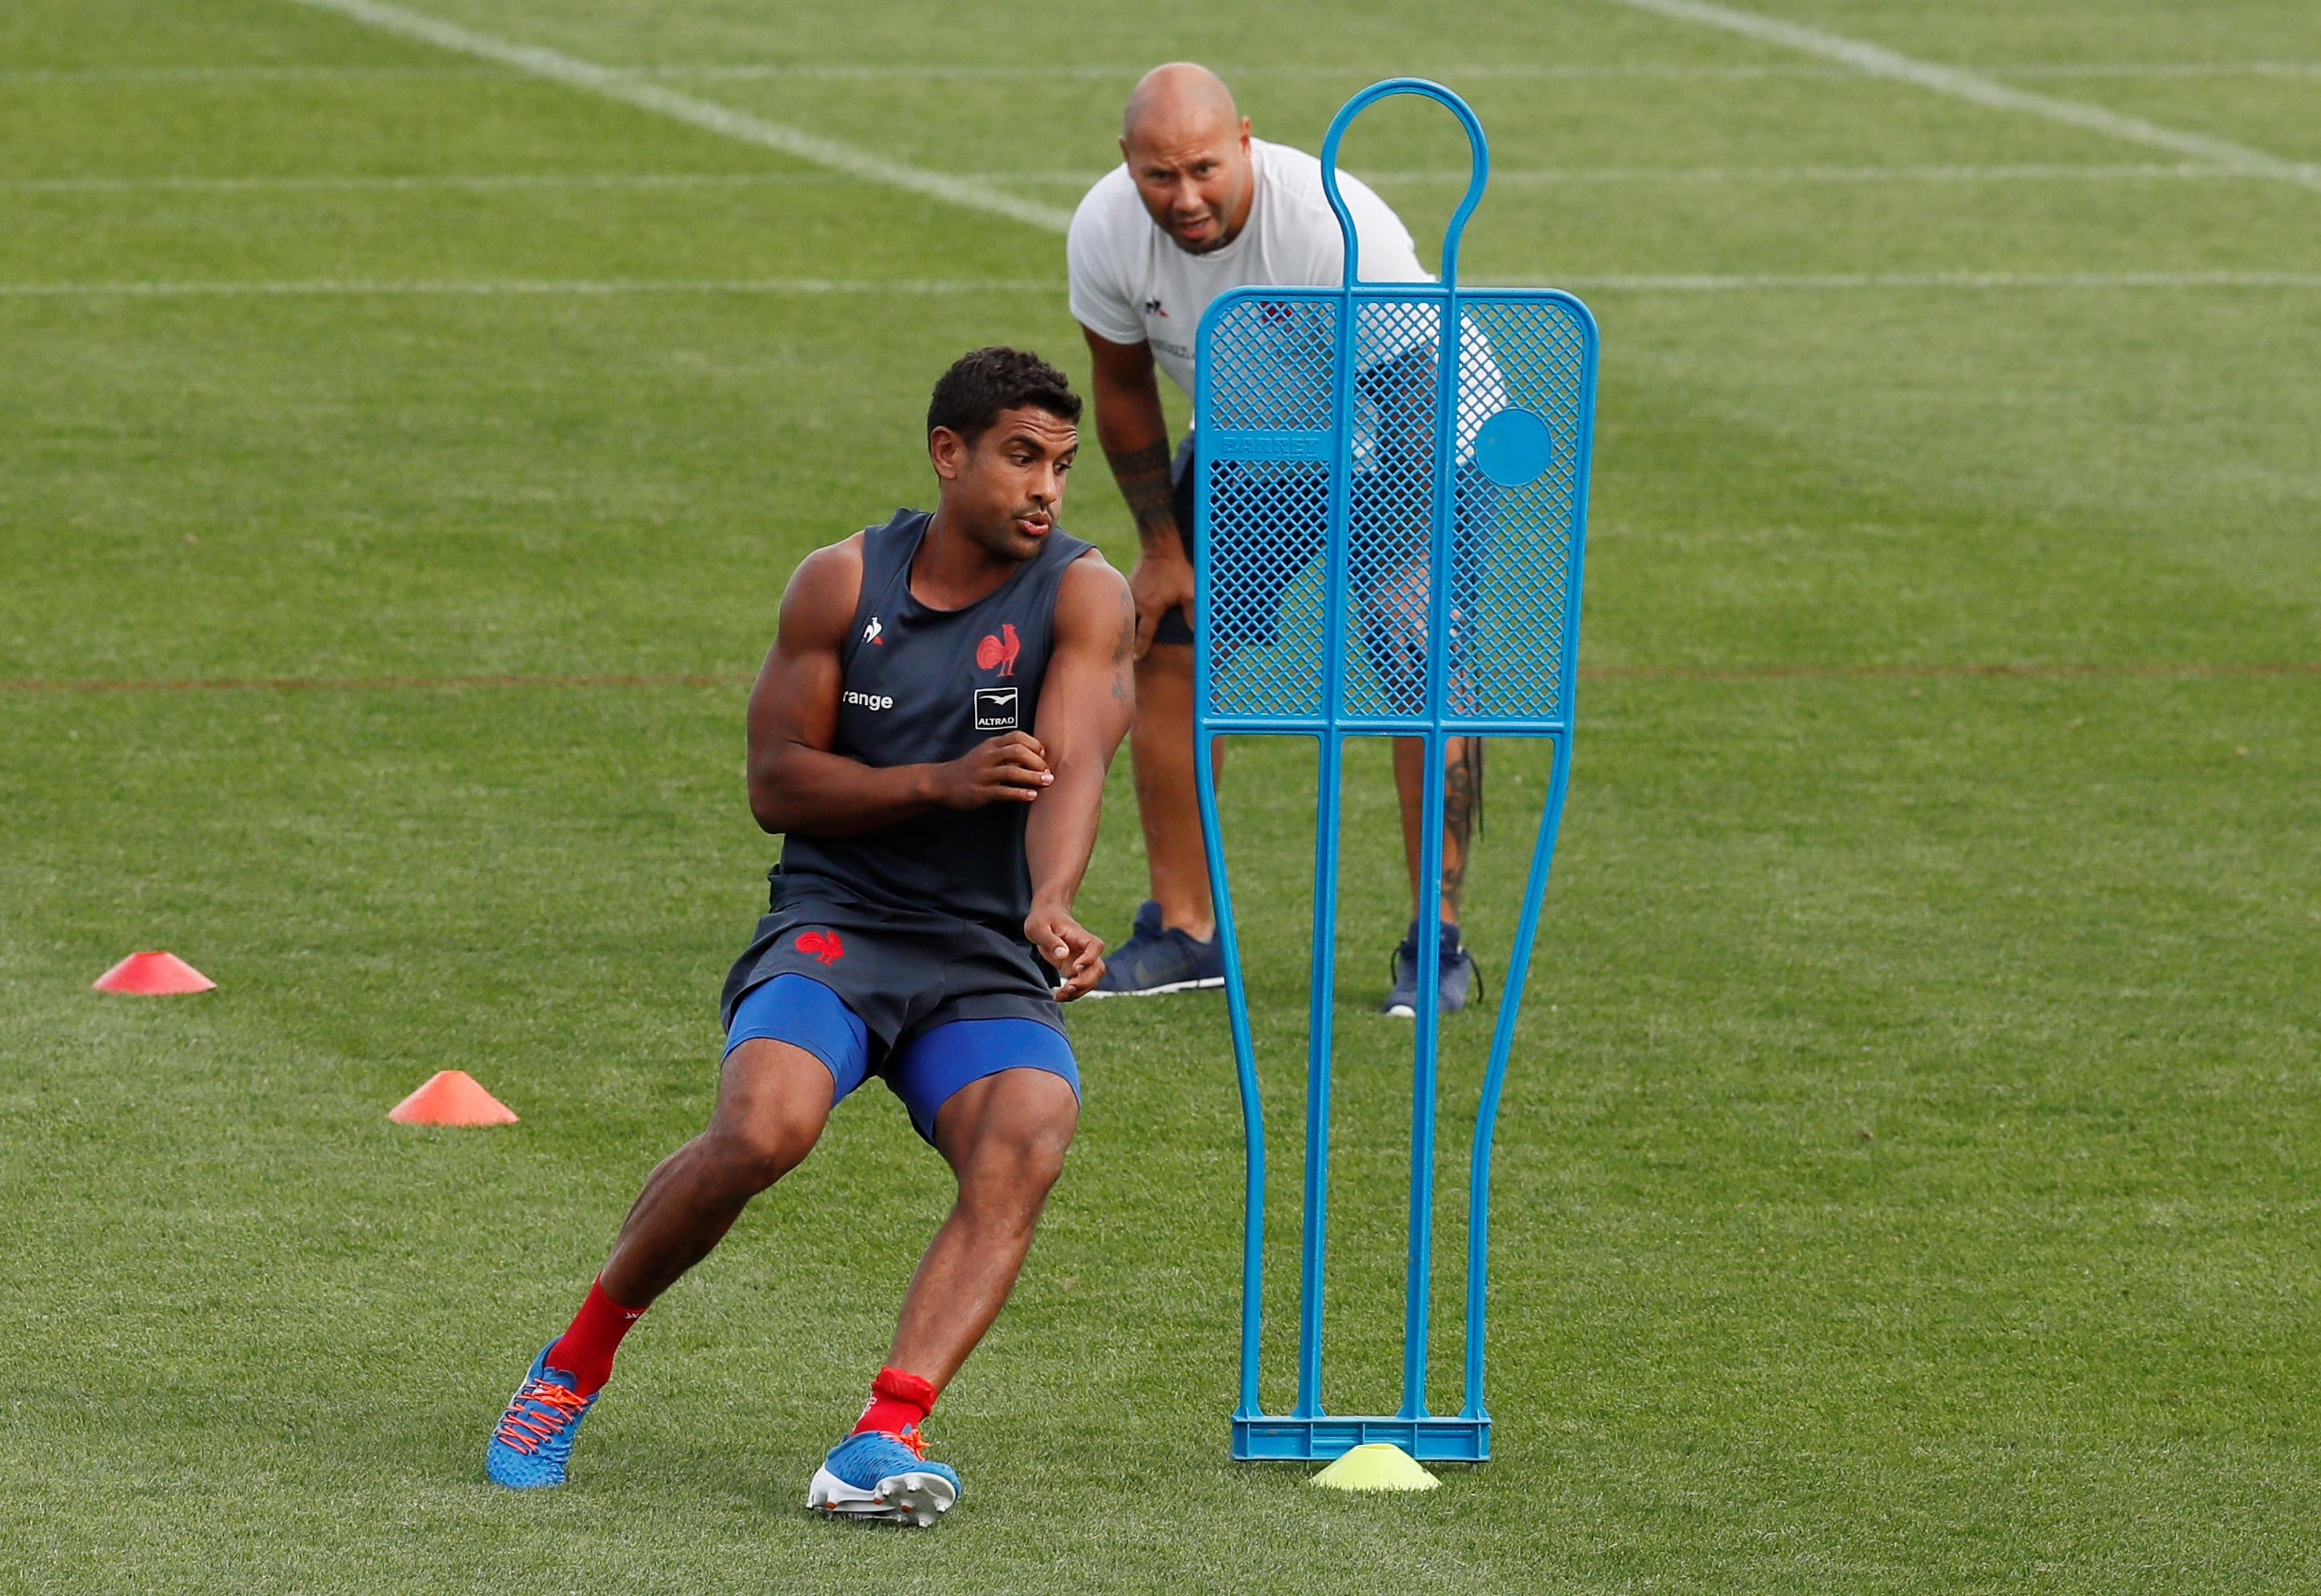 France's Fofana ruled out of World Cup with thigh injury